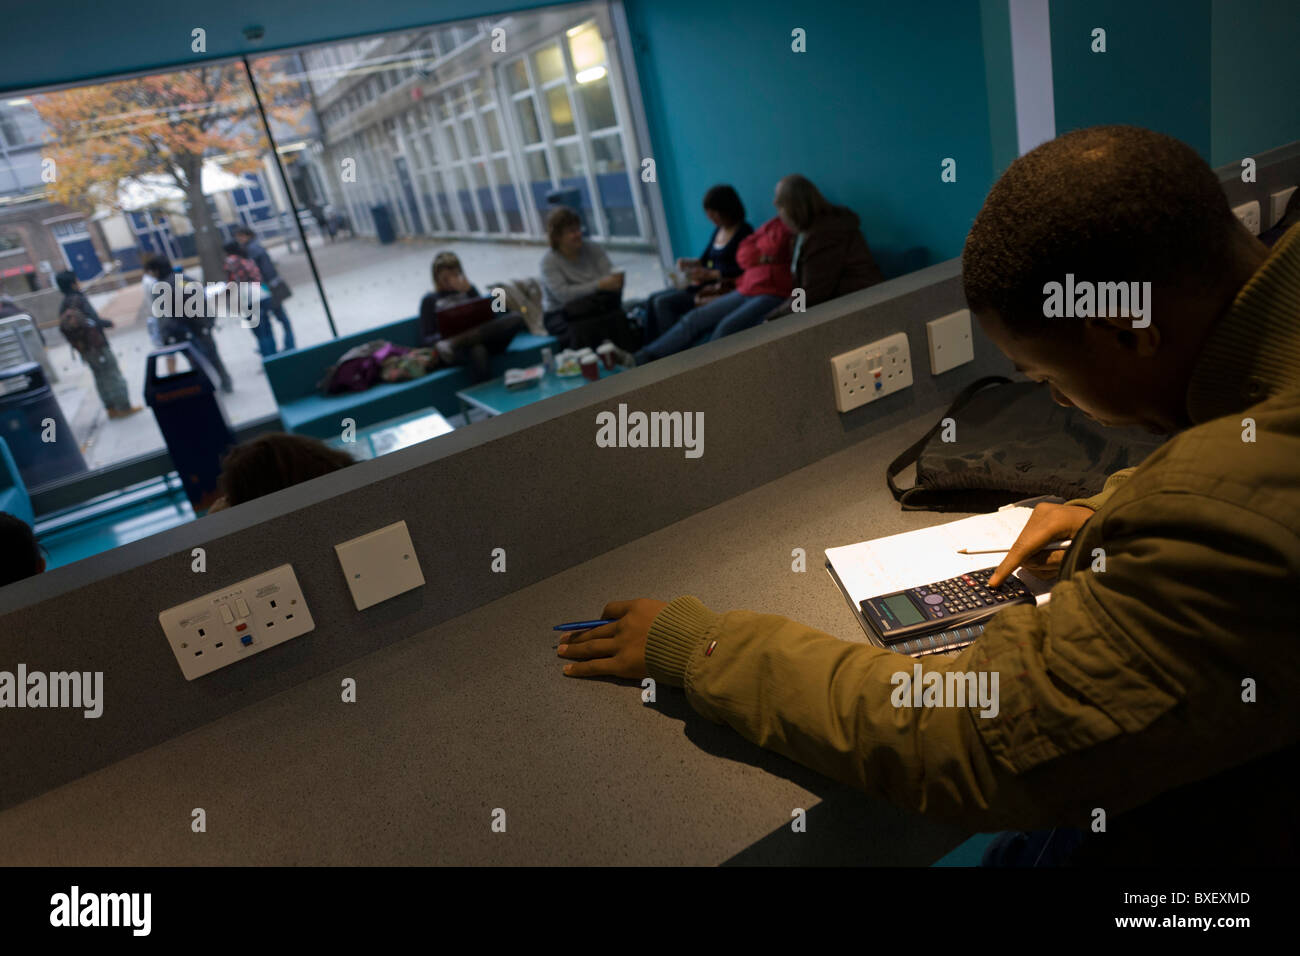 young-man-studies-at-workstation-in-comm